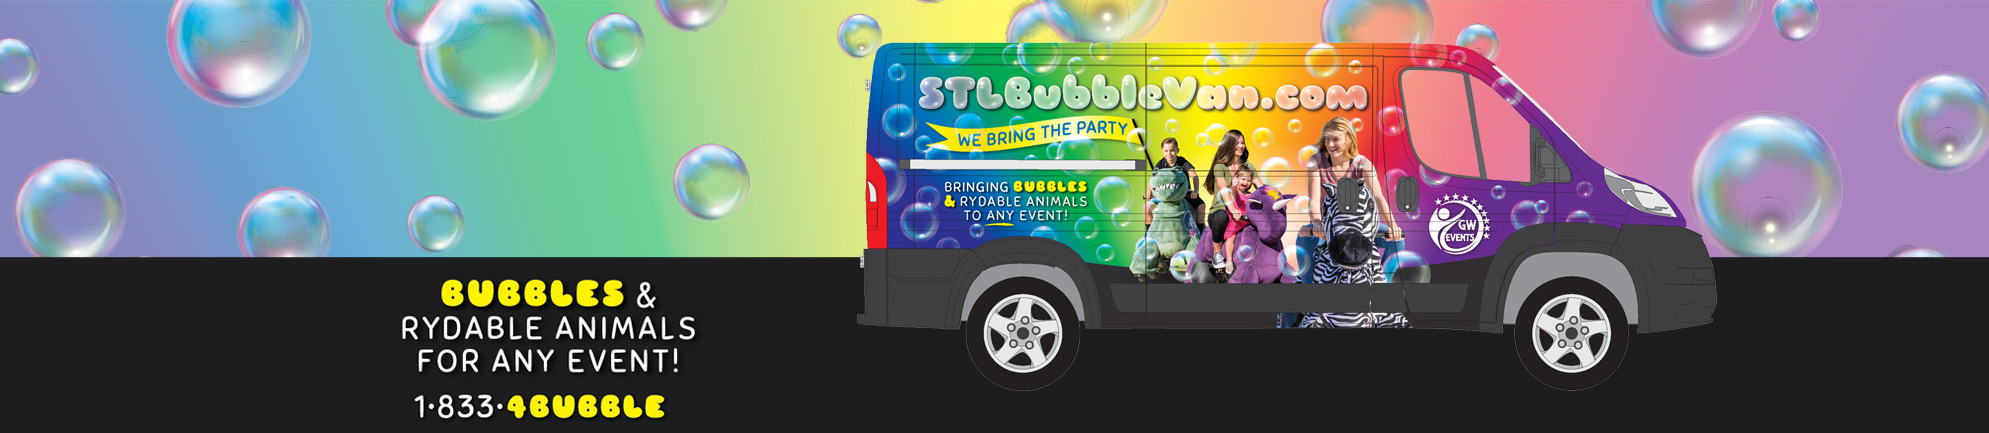 St. Louis Bubble Van and Rydables